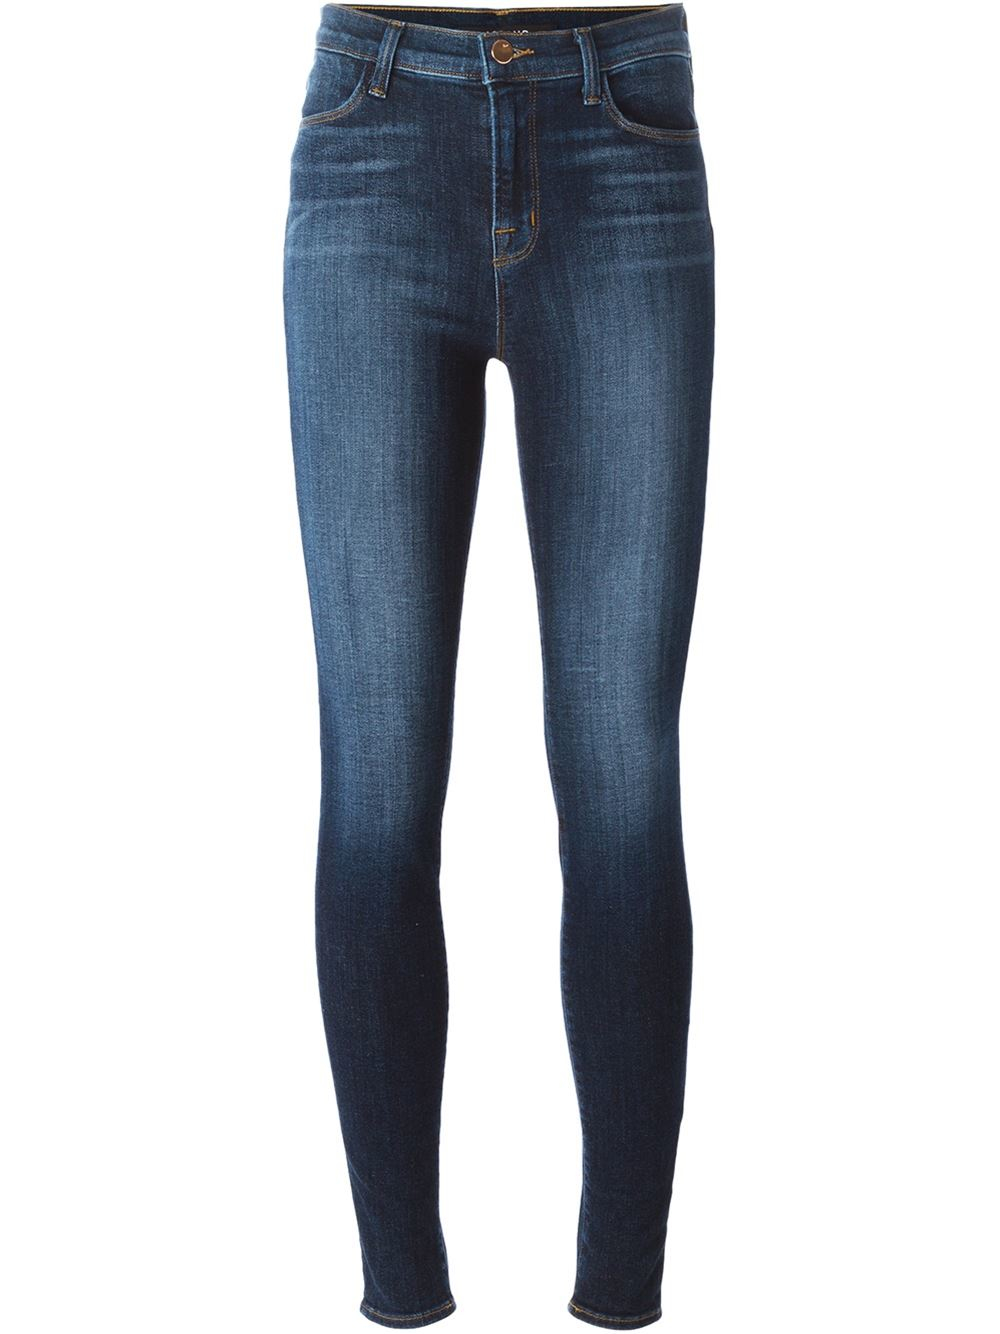 ASOS DESIGN Tall Ridley high waist skinny jeans in flat blue wash. £ ASOS DESIGN Whitby low rise skinny jeans in clean black. £ ASOS DESIGN Petite Rivington high waisted jeans in black coated. £ ASOS DESIGN Maternity Ridley high waist skinny jeans in extreme dark stonewash with button fly and ripped knee with unde.